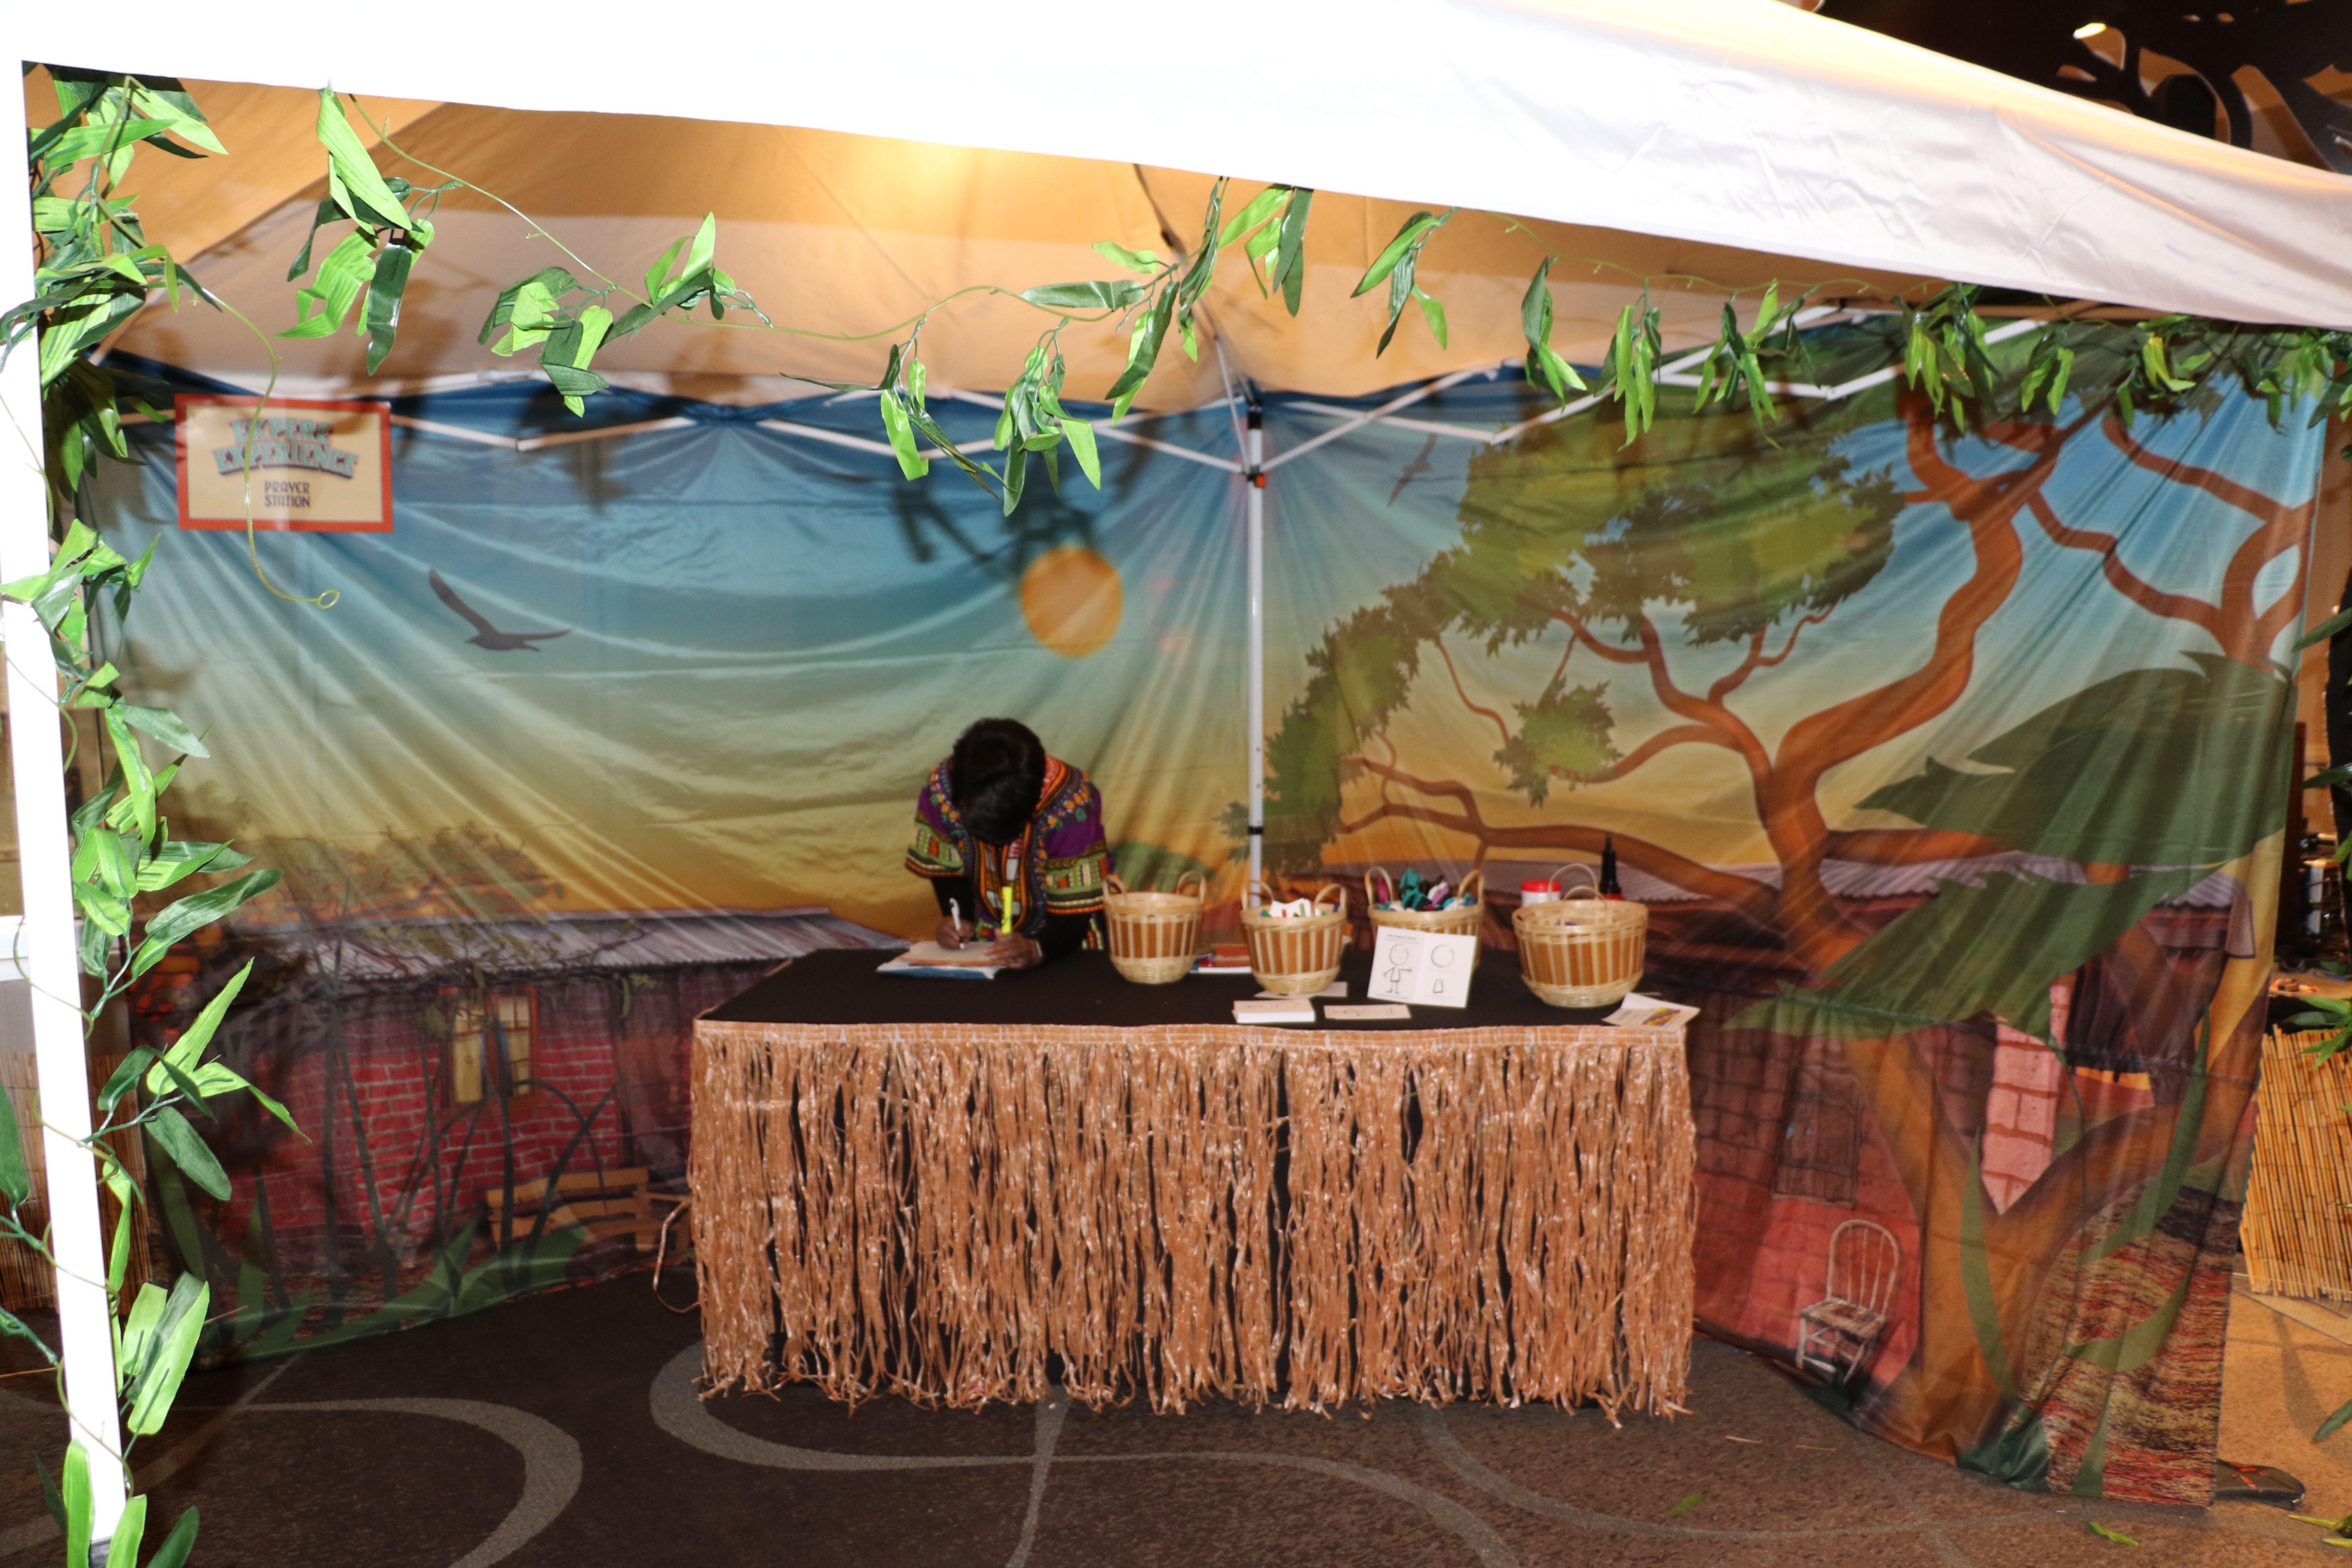 Your prayer station could take place beneath a tent